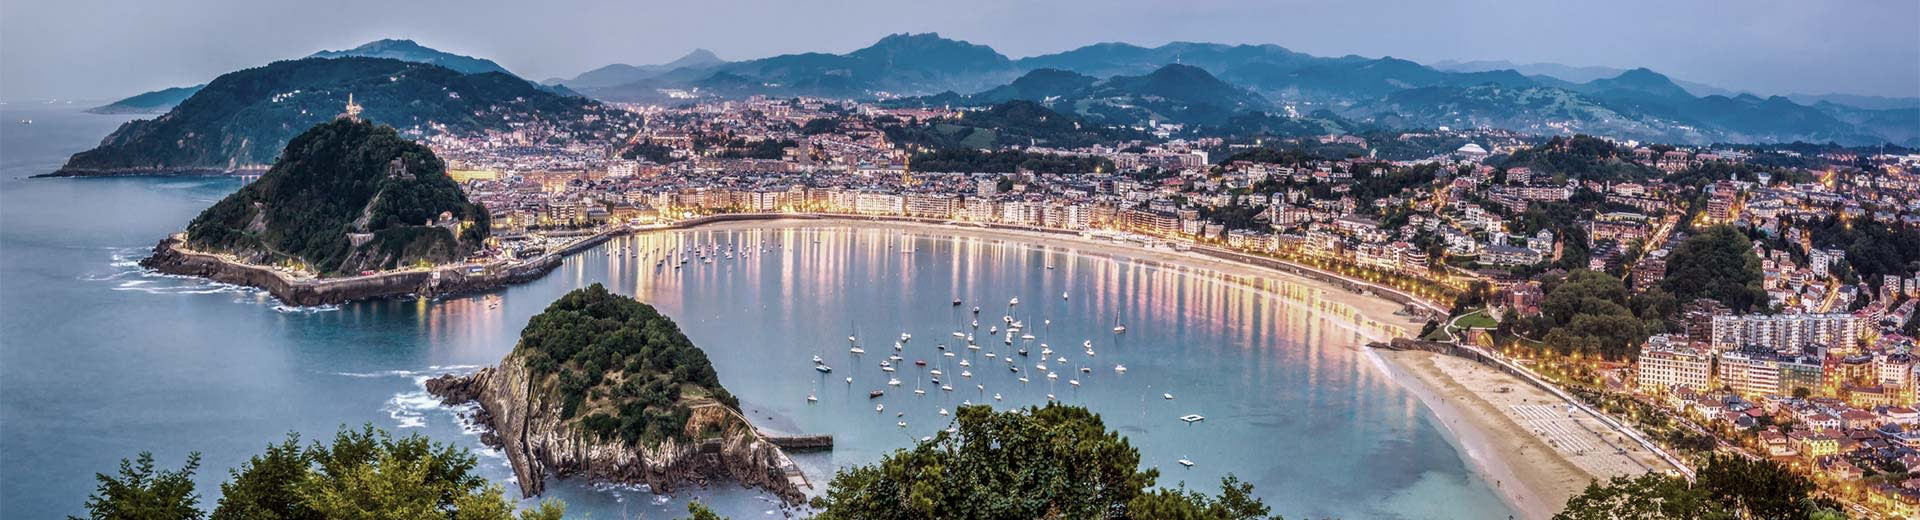 One of the beautiful beaches of San Sebastian, with buildings along the coast lighting up the dusk sky